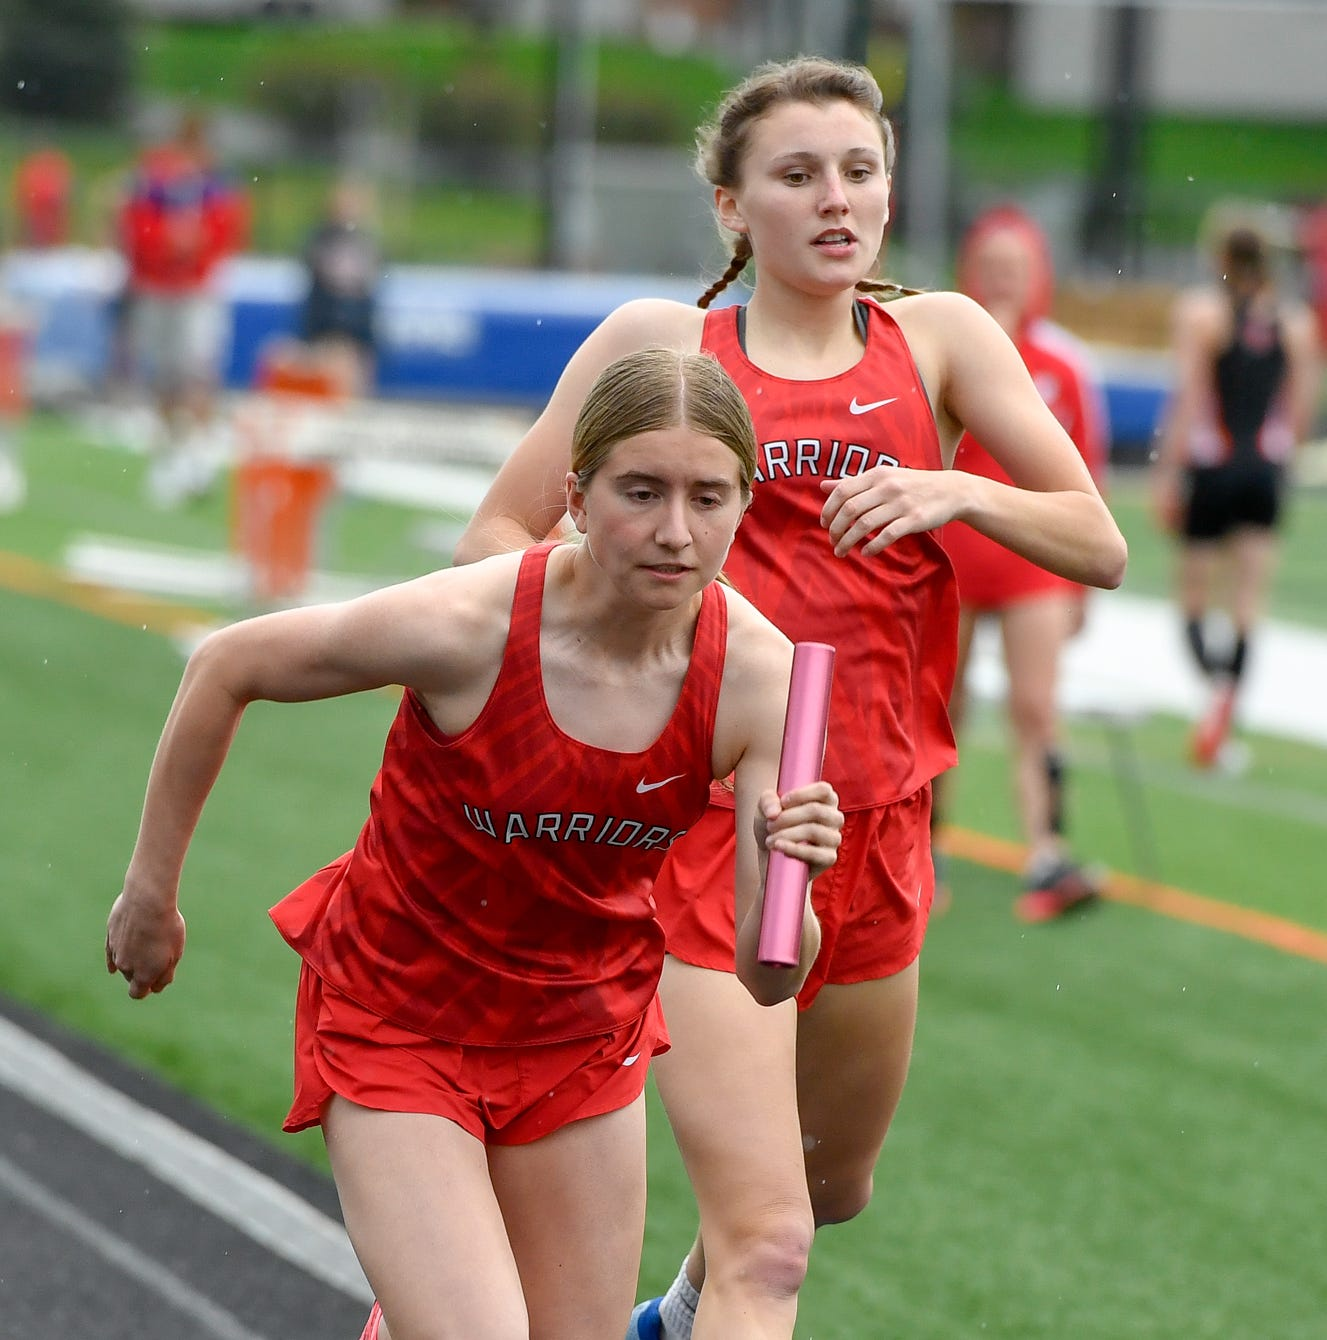 PREP ROUNDUP, TUESDAY, APRIL 23: Freshmen lead Susquehannock girls to tight triumph